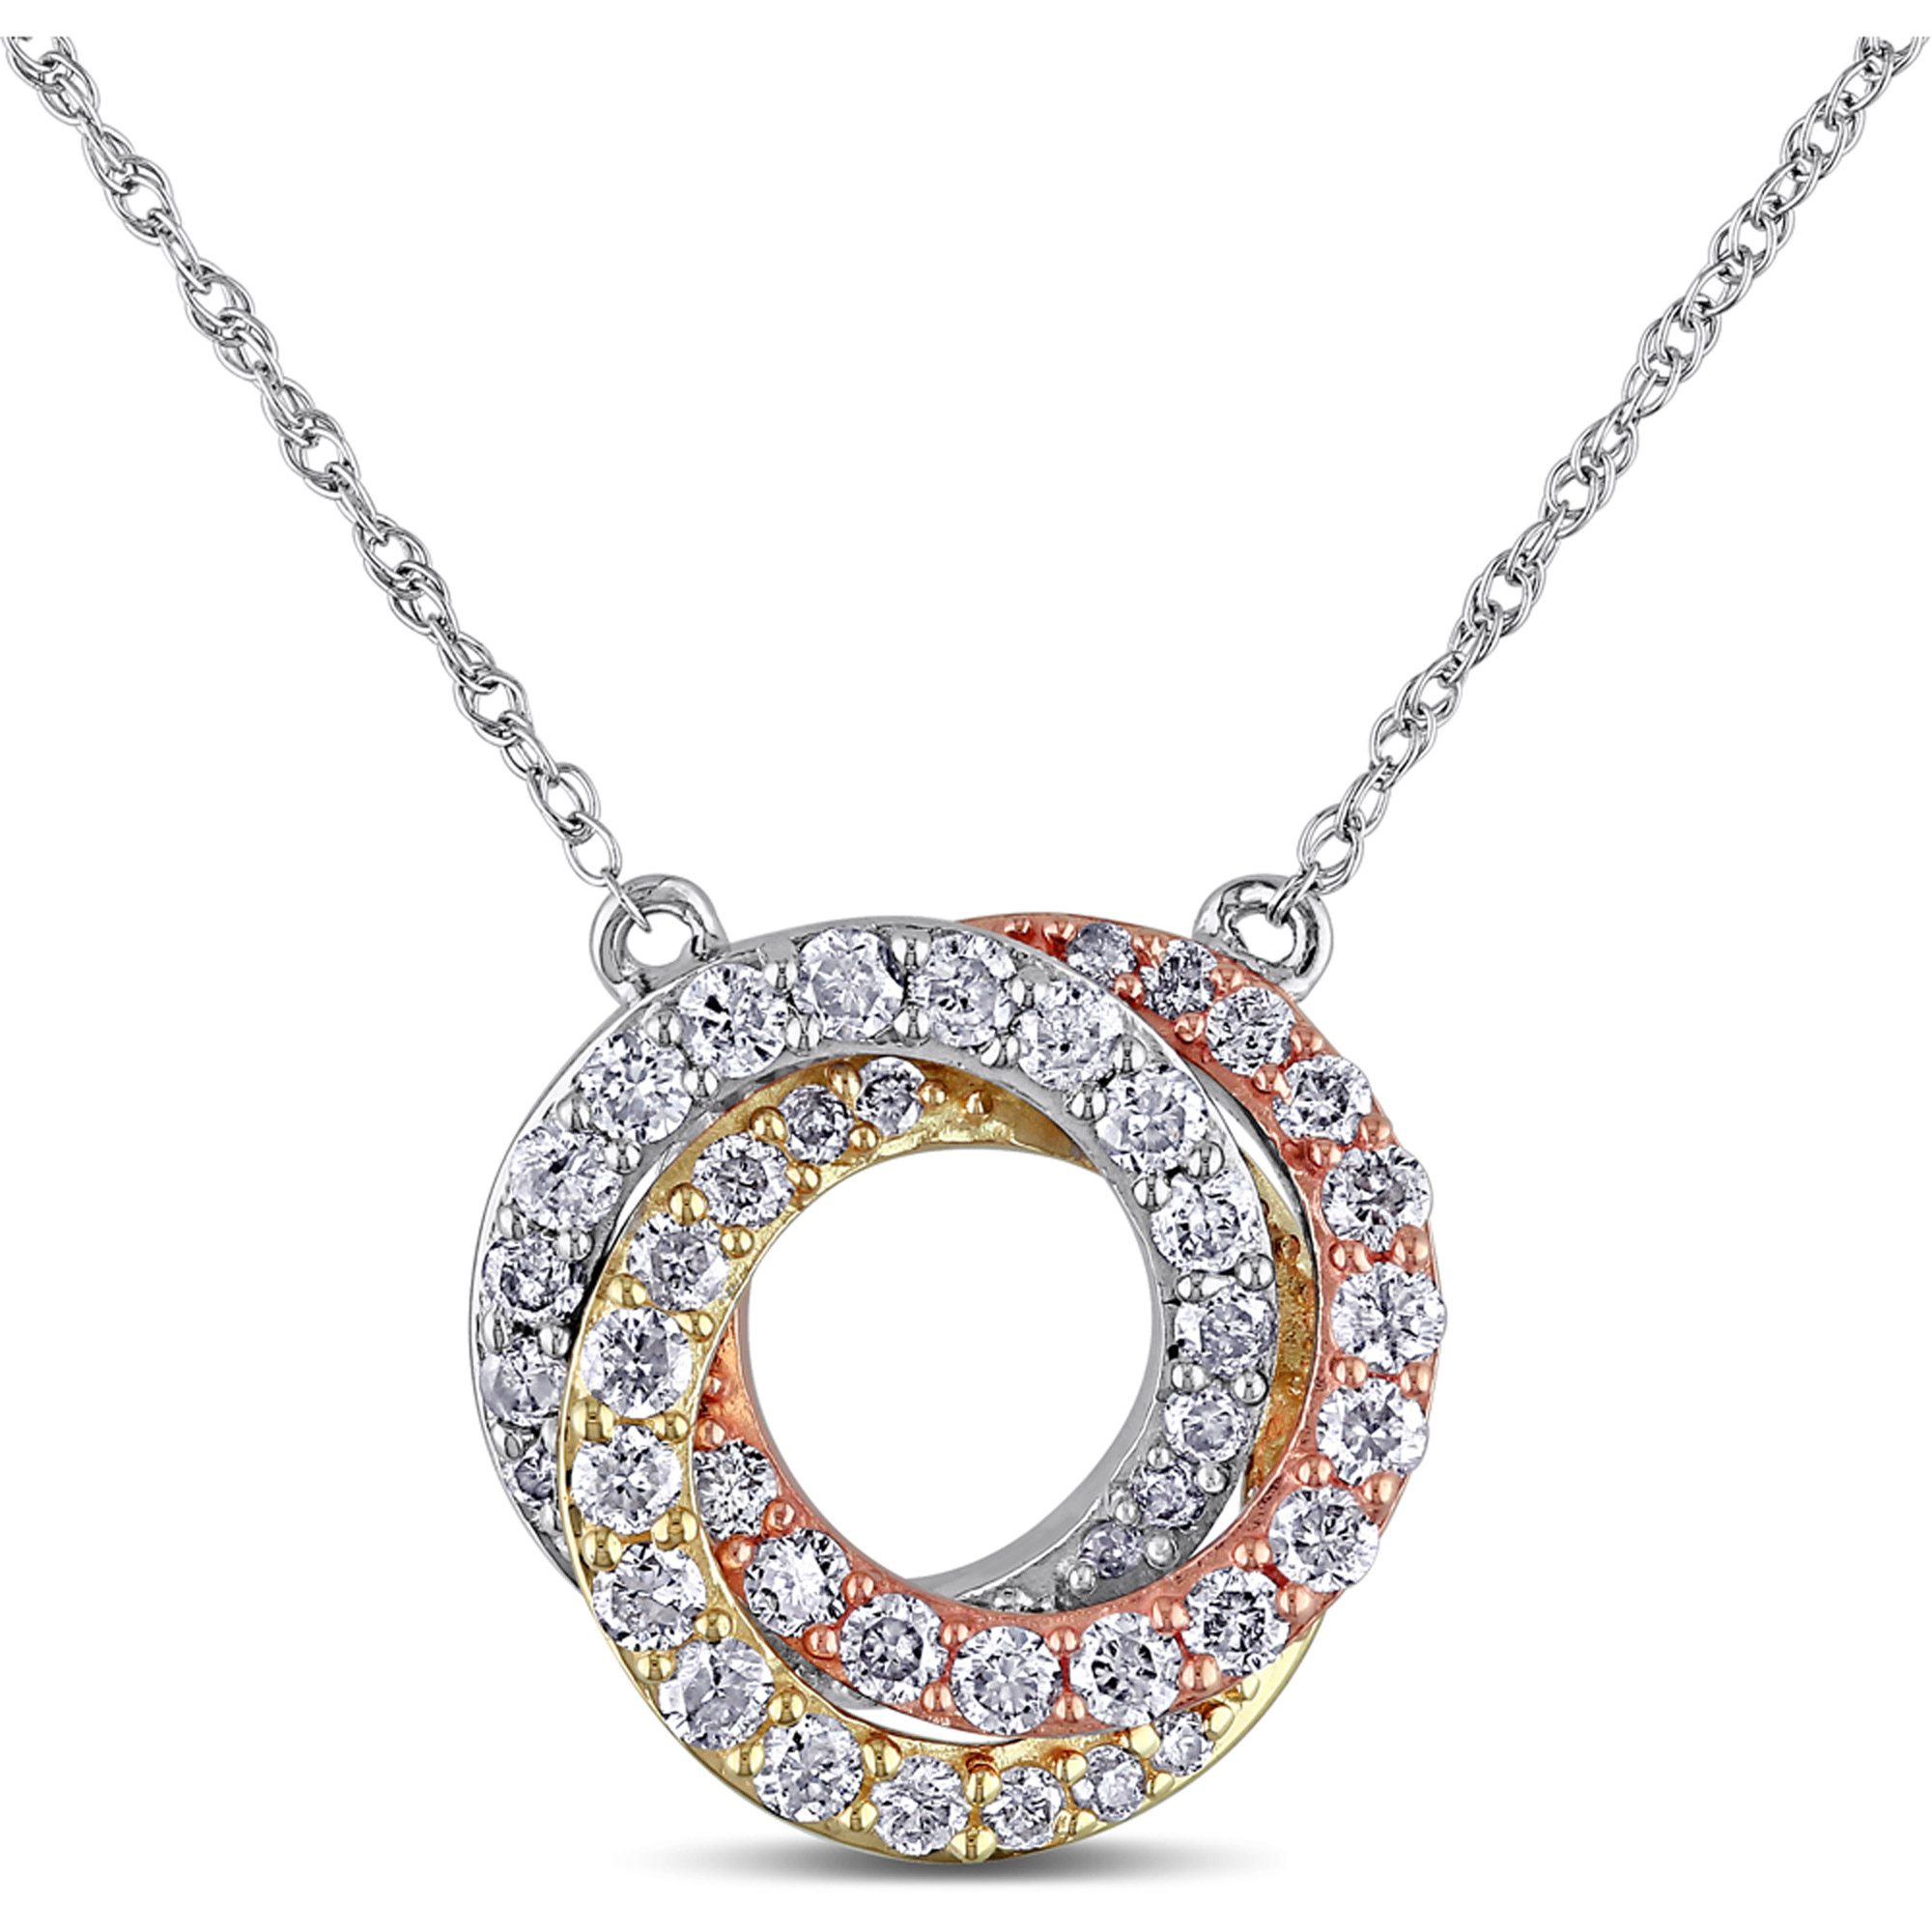 "Miabella 1 2 Carat T.W. Diamond 10kt Three-Tone Gold Interlocking Circle Necklace, 17"" by Miabella"